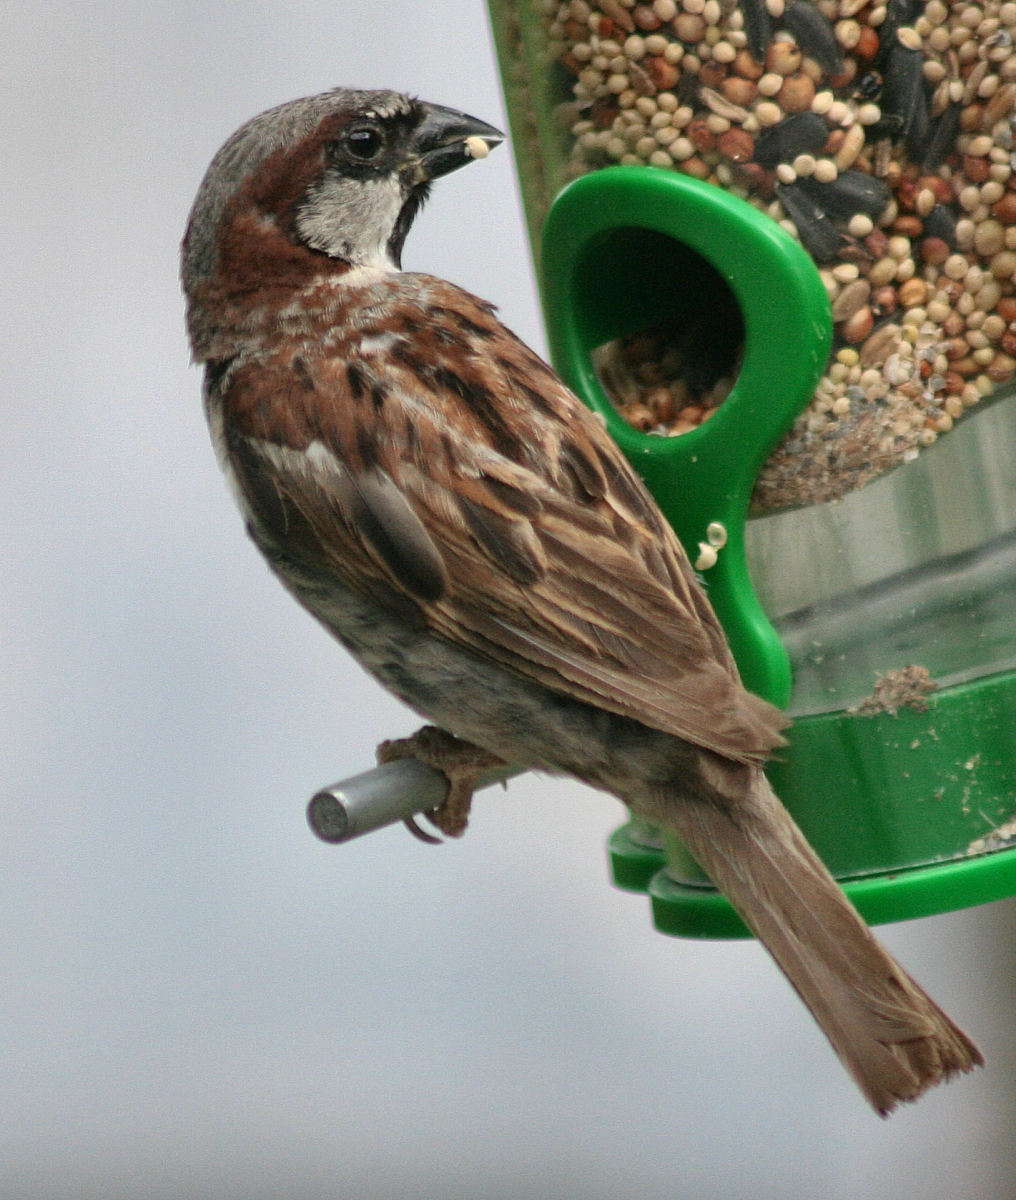 Bird Behaviour at Bird Feeders: Lesson Plan for Elementary Students